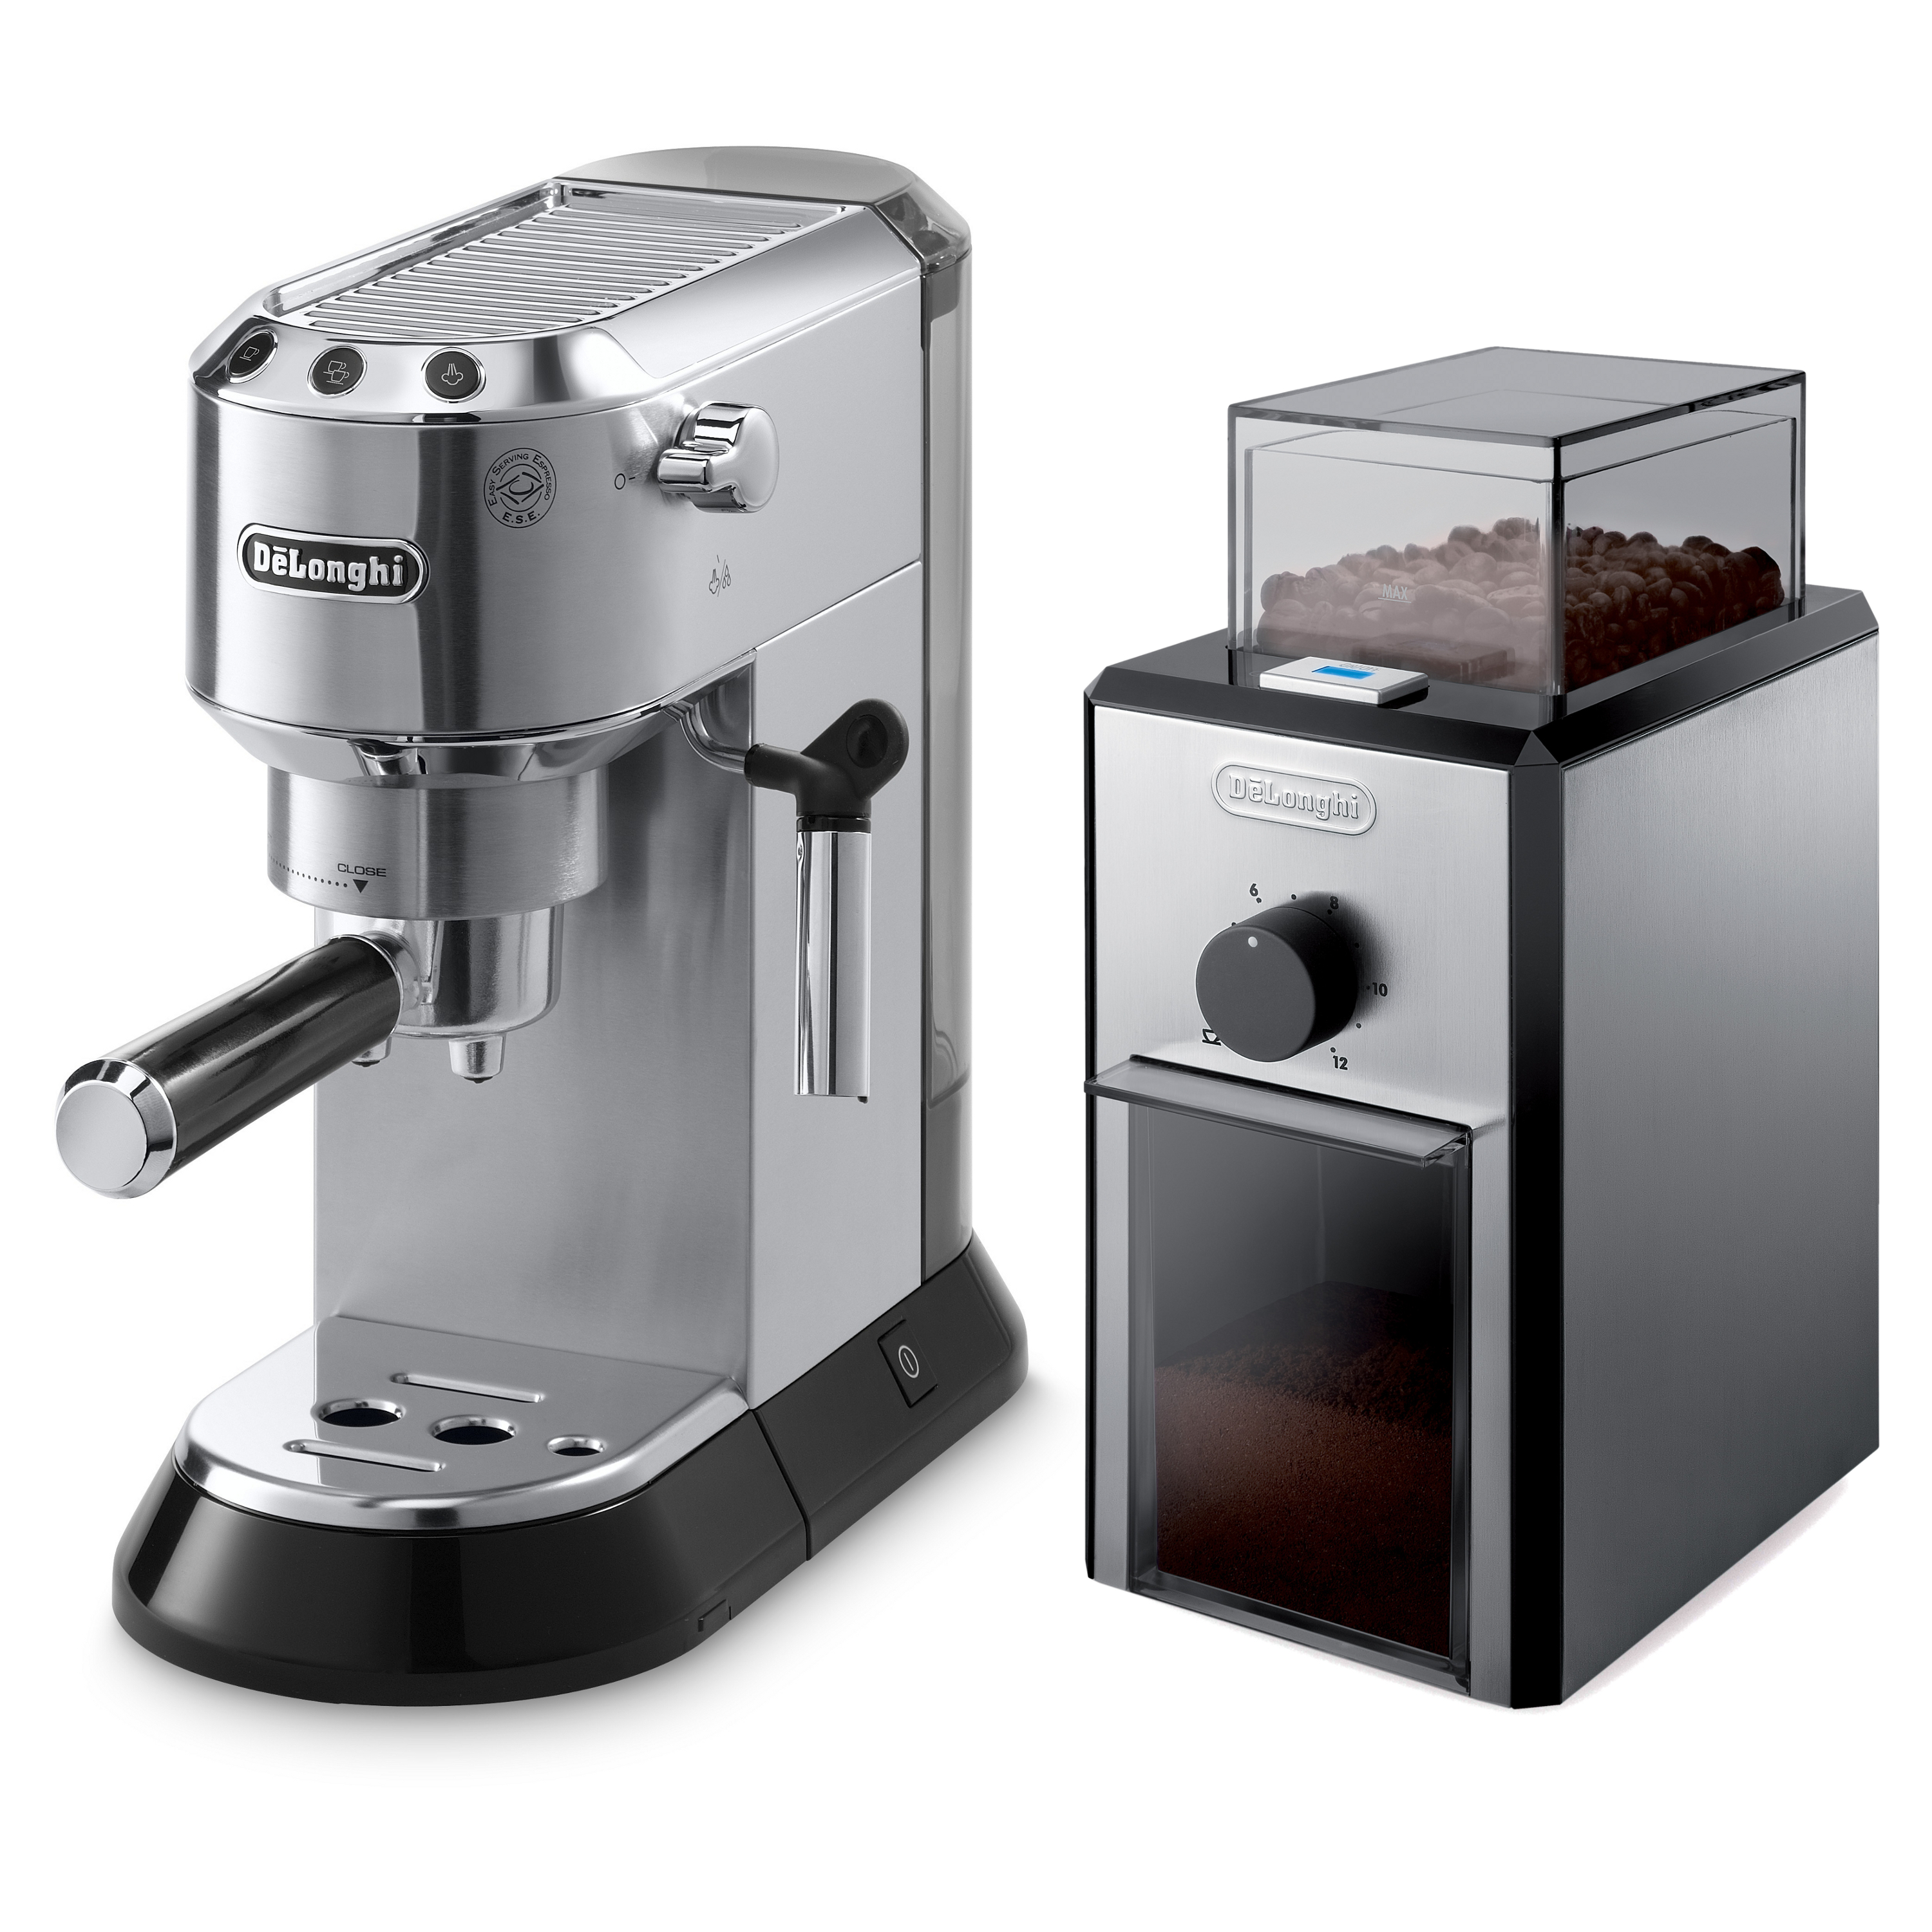 Delonghi Dedica Black Stainless Steel Pump Espresso and Cappuccino Maker with Electric Conical Burr Grinder